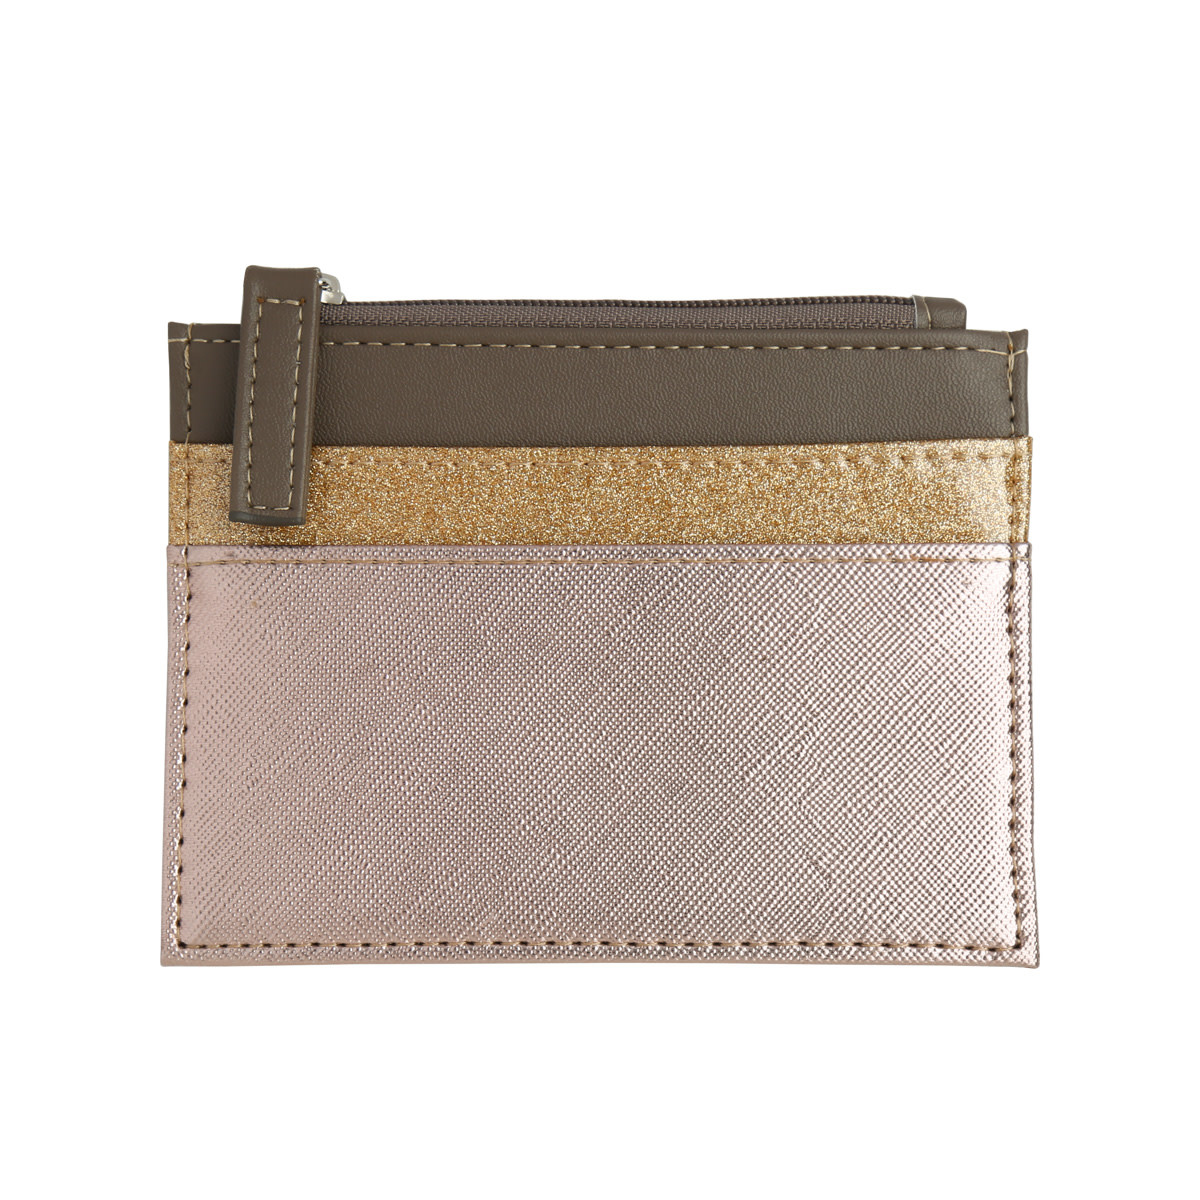 With love Wallet trio gold